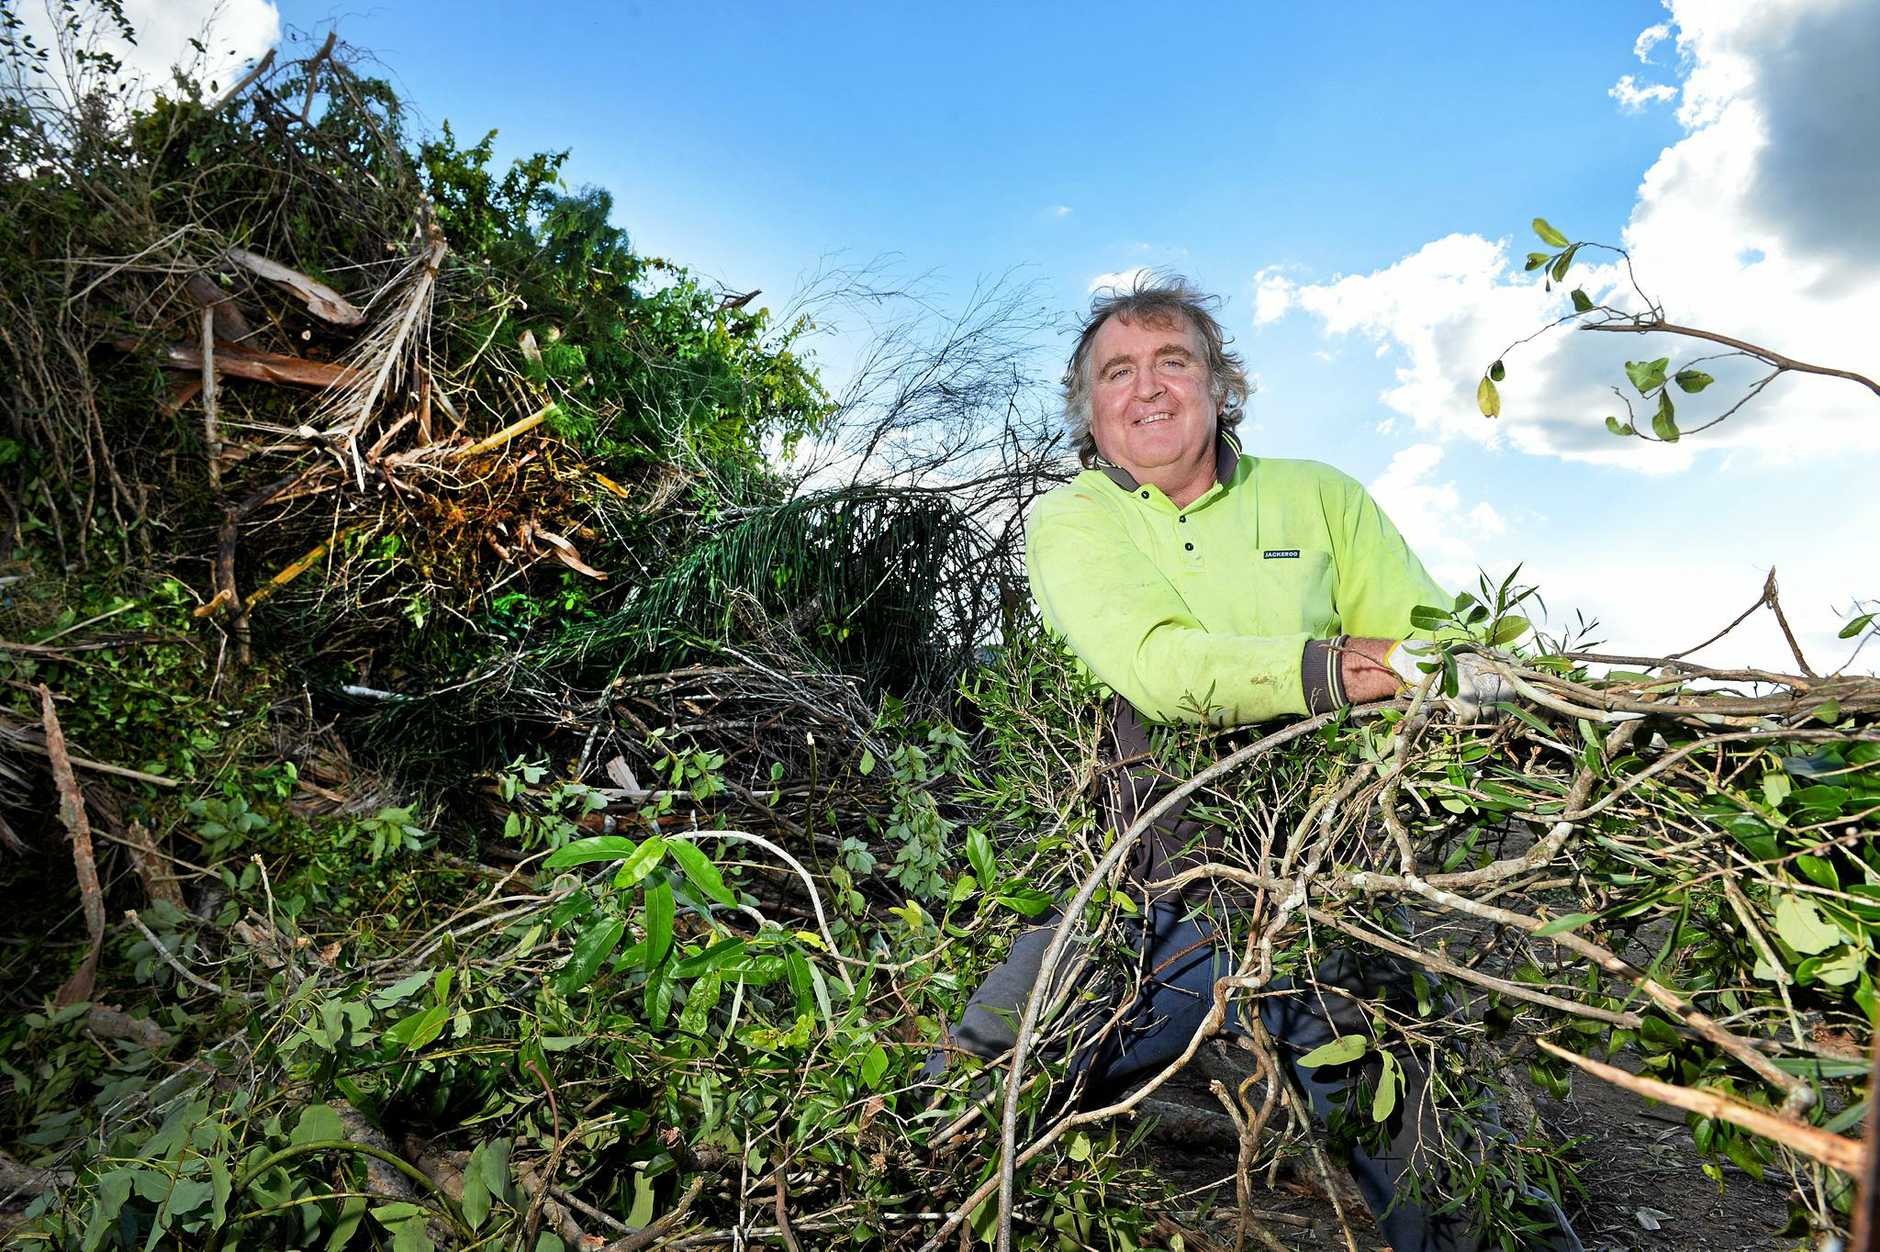 DOWN AT THE DUMP: Warren Robinson emptying his trailer at the Bonnick Rd green waste dump in Gympie.